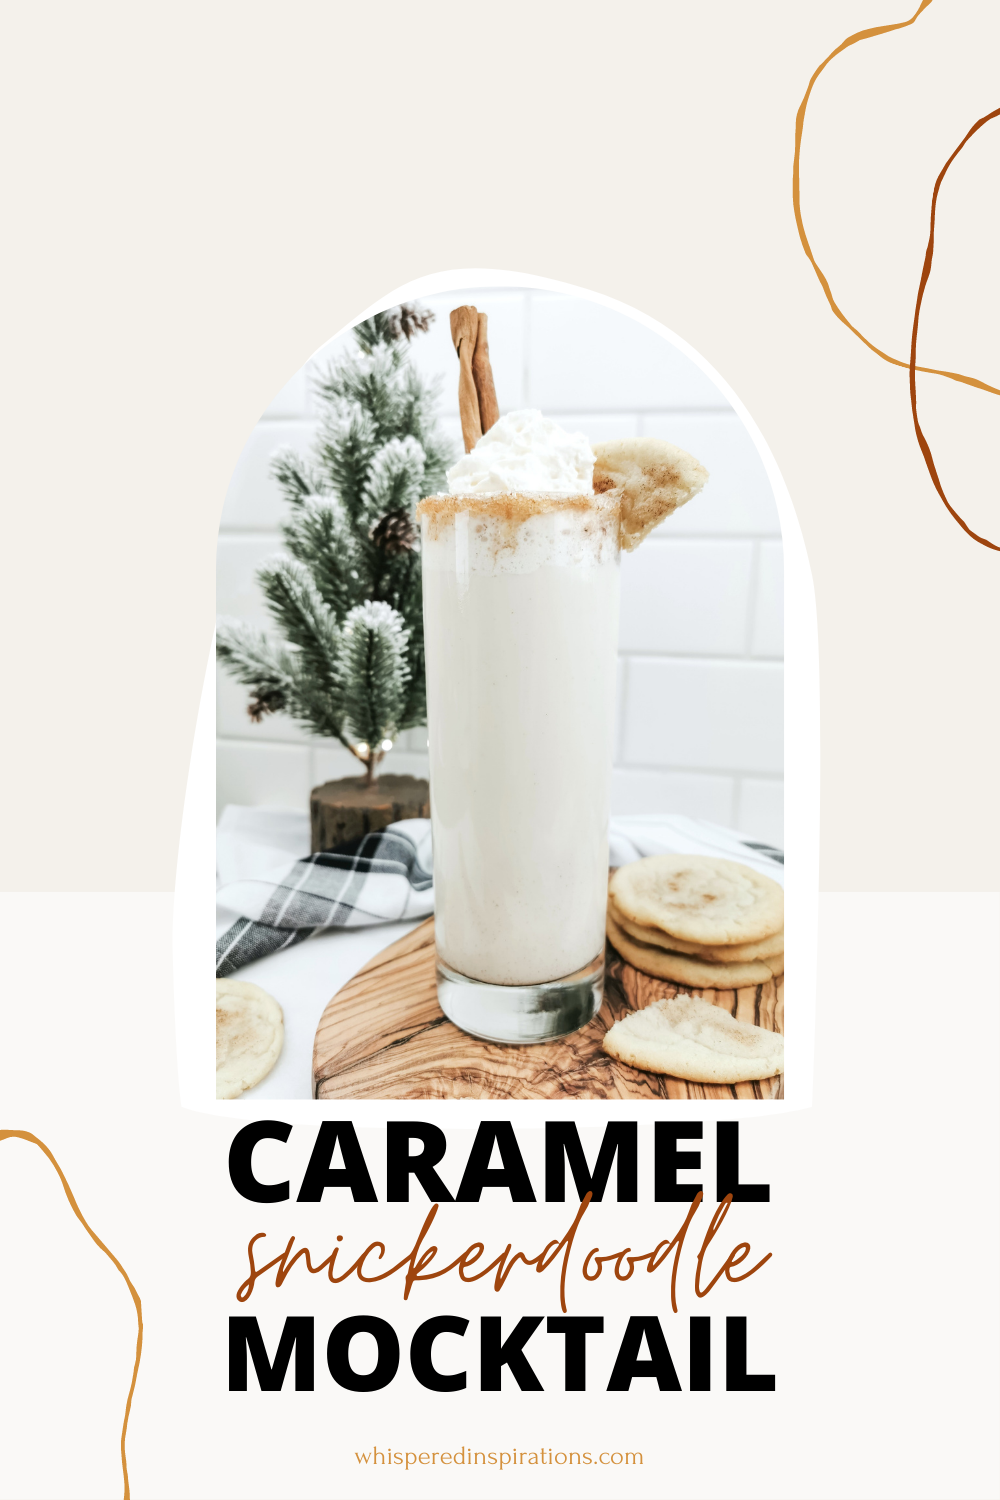 """A tall glass is filled with a Caramel Snickerdoodle mocktail. Below reads a banner that says, """"Caramel Snickerdoodle Mocktail."""""""